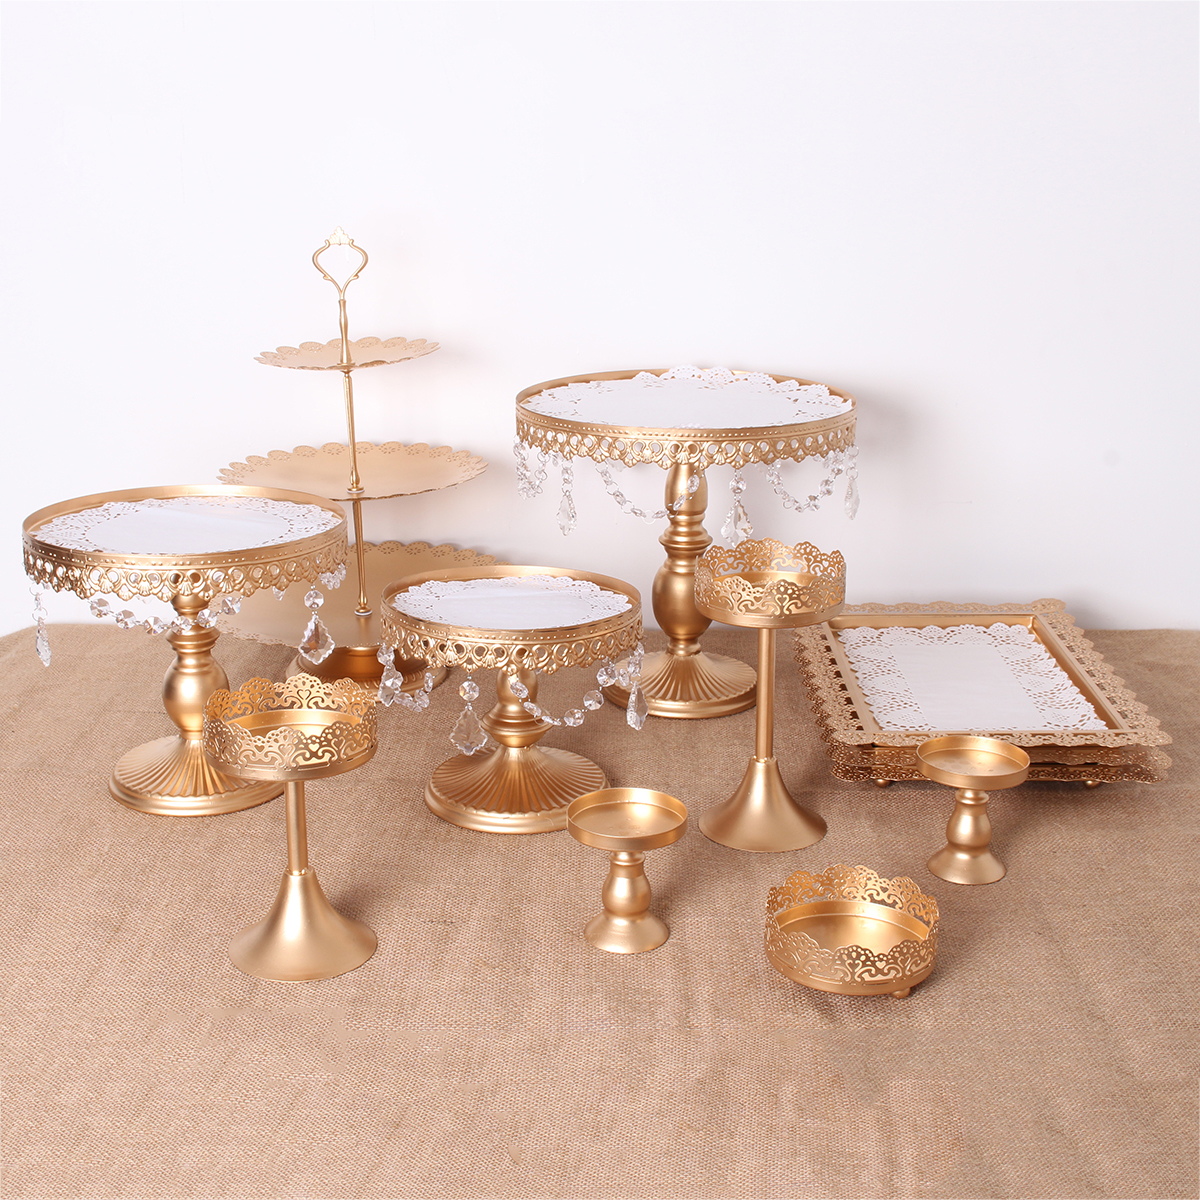 12PCS Vintage Crystal Cake Holder Cupcake Revolving Cake Stand Dessert Platter Display Party